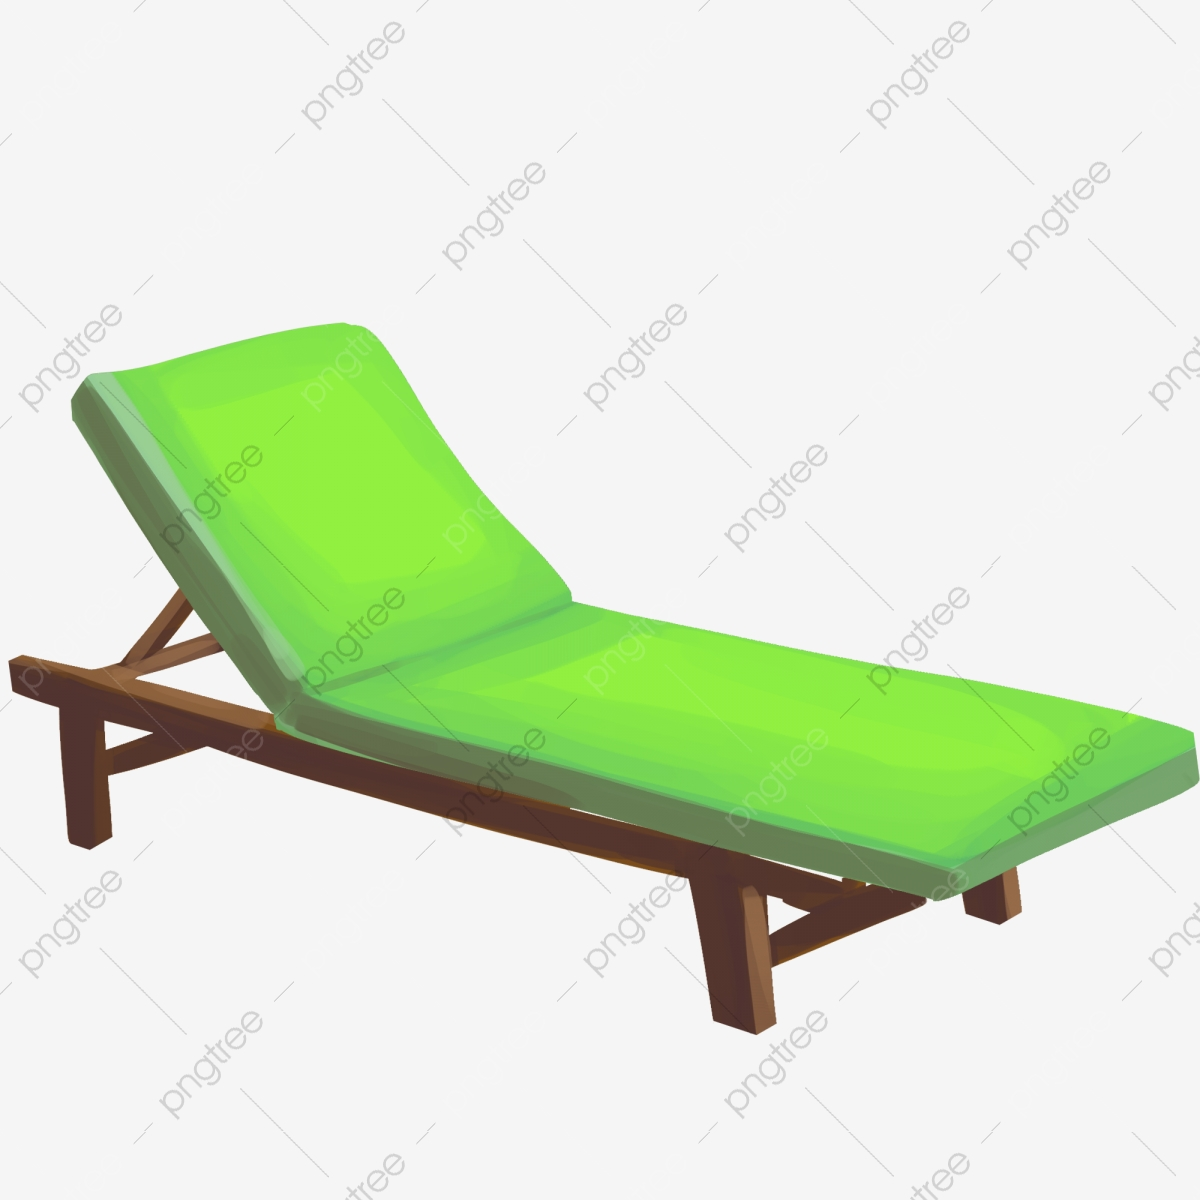 Awesome Cartoon Green Lounge Chair Padded Sunbathing Resting Png Squirreltailoven Fun Painted Chair Ideas Images Squirreltailovenorg